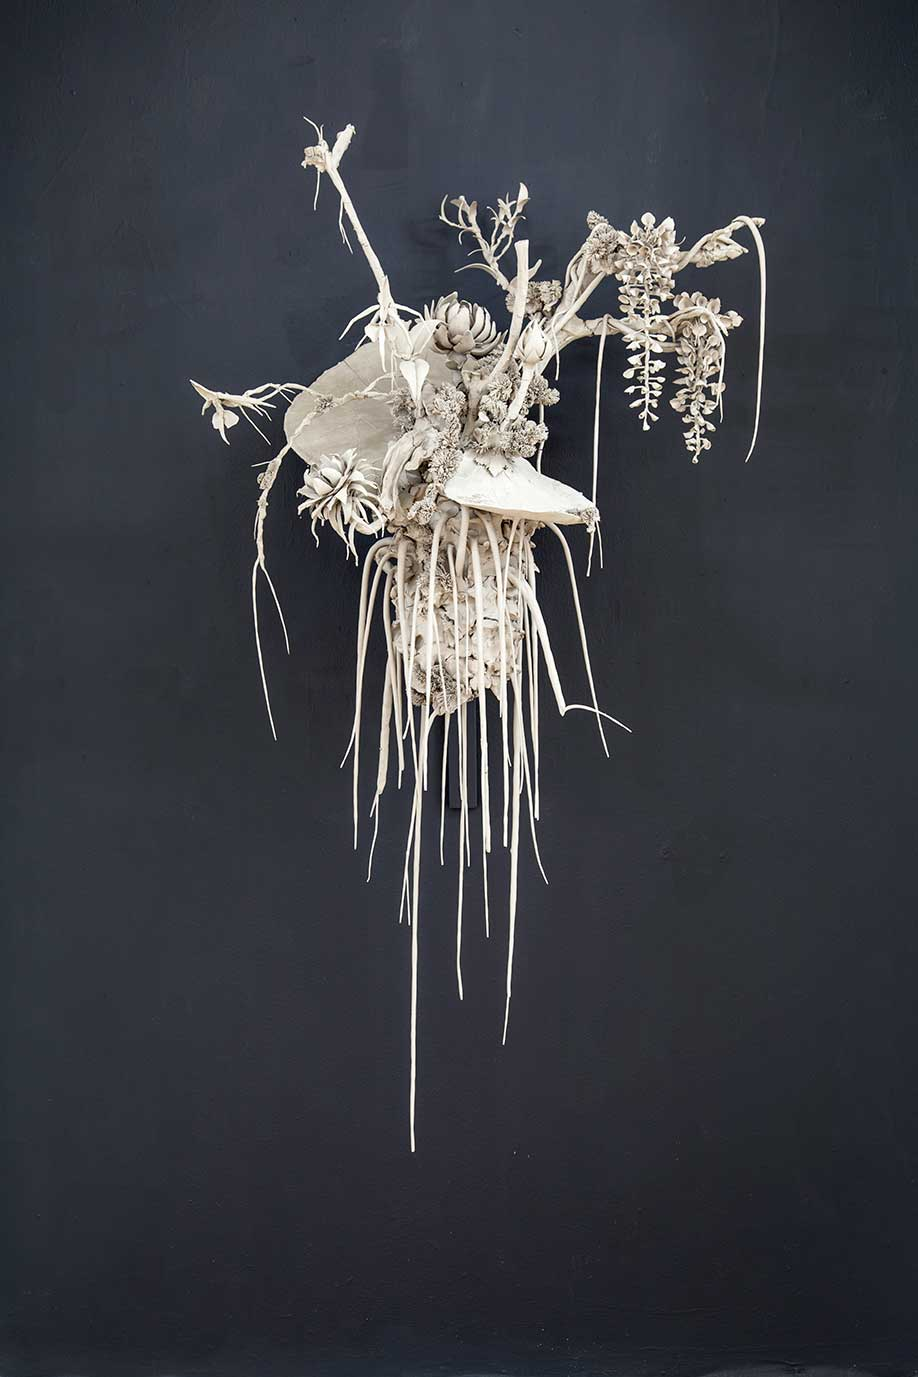 <b>Title:&nbsp;</b>Nocturne <br /><b>Year:&nbsp;</b>2016<br /><b>Medium:&nbsp;</b>Clay, wire and steel <br /><b>Size:&nbsp;</b>60 x 70 x 30cm